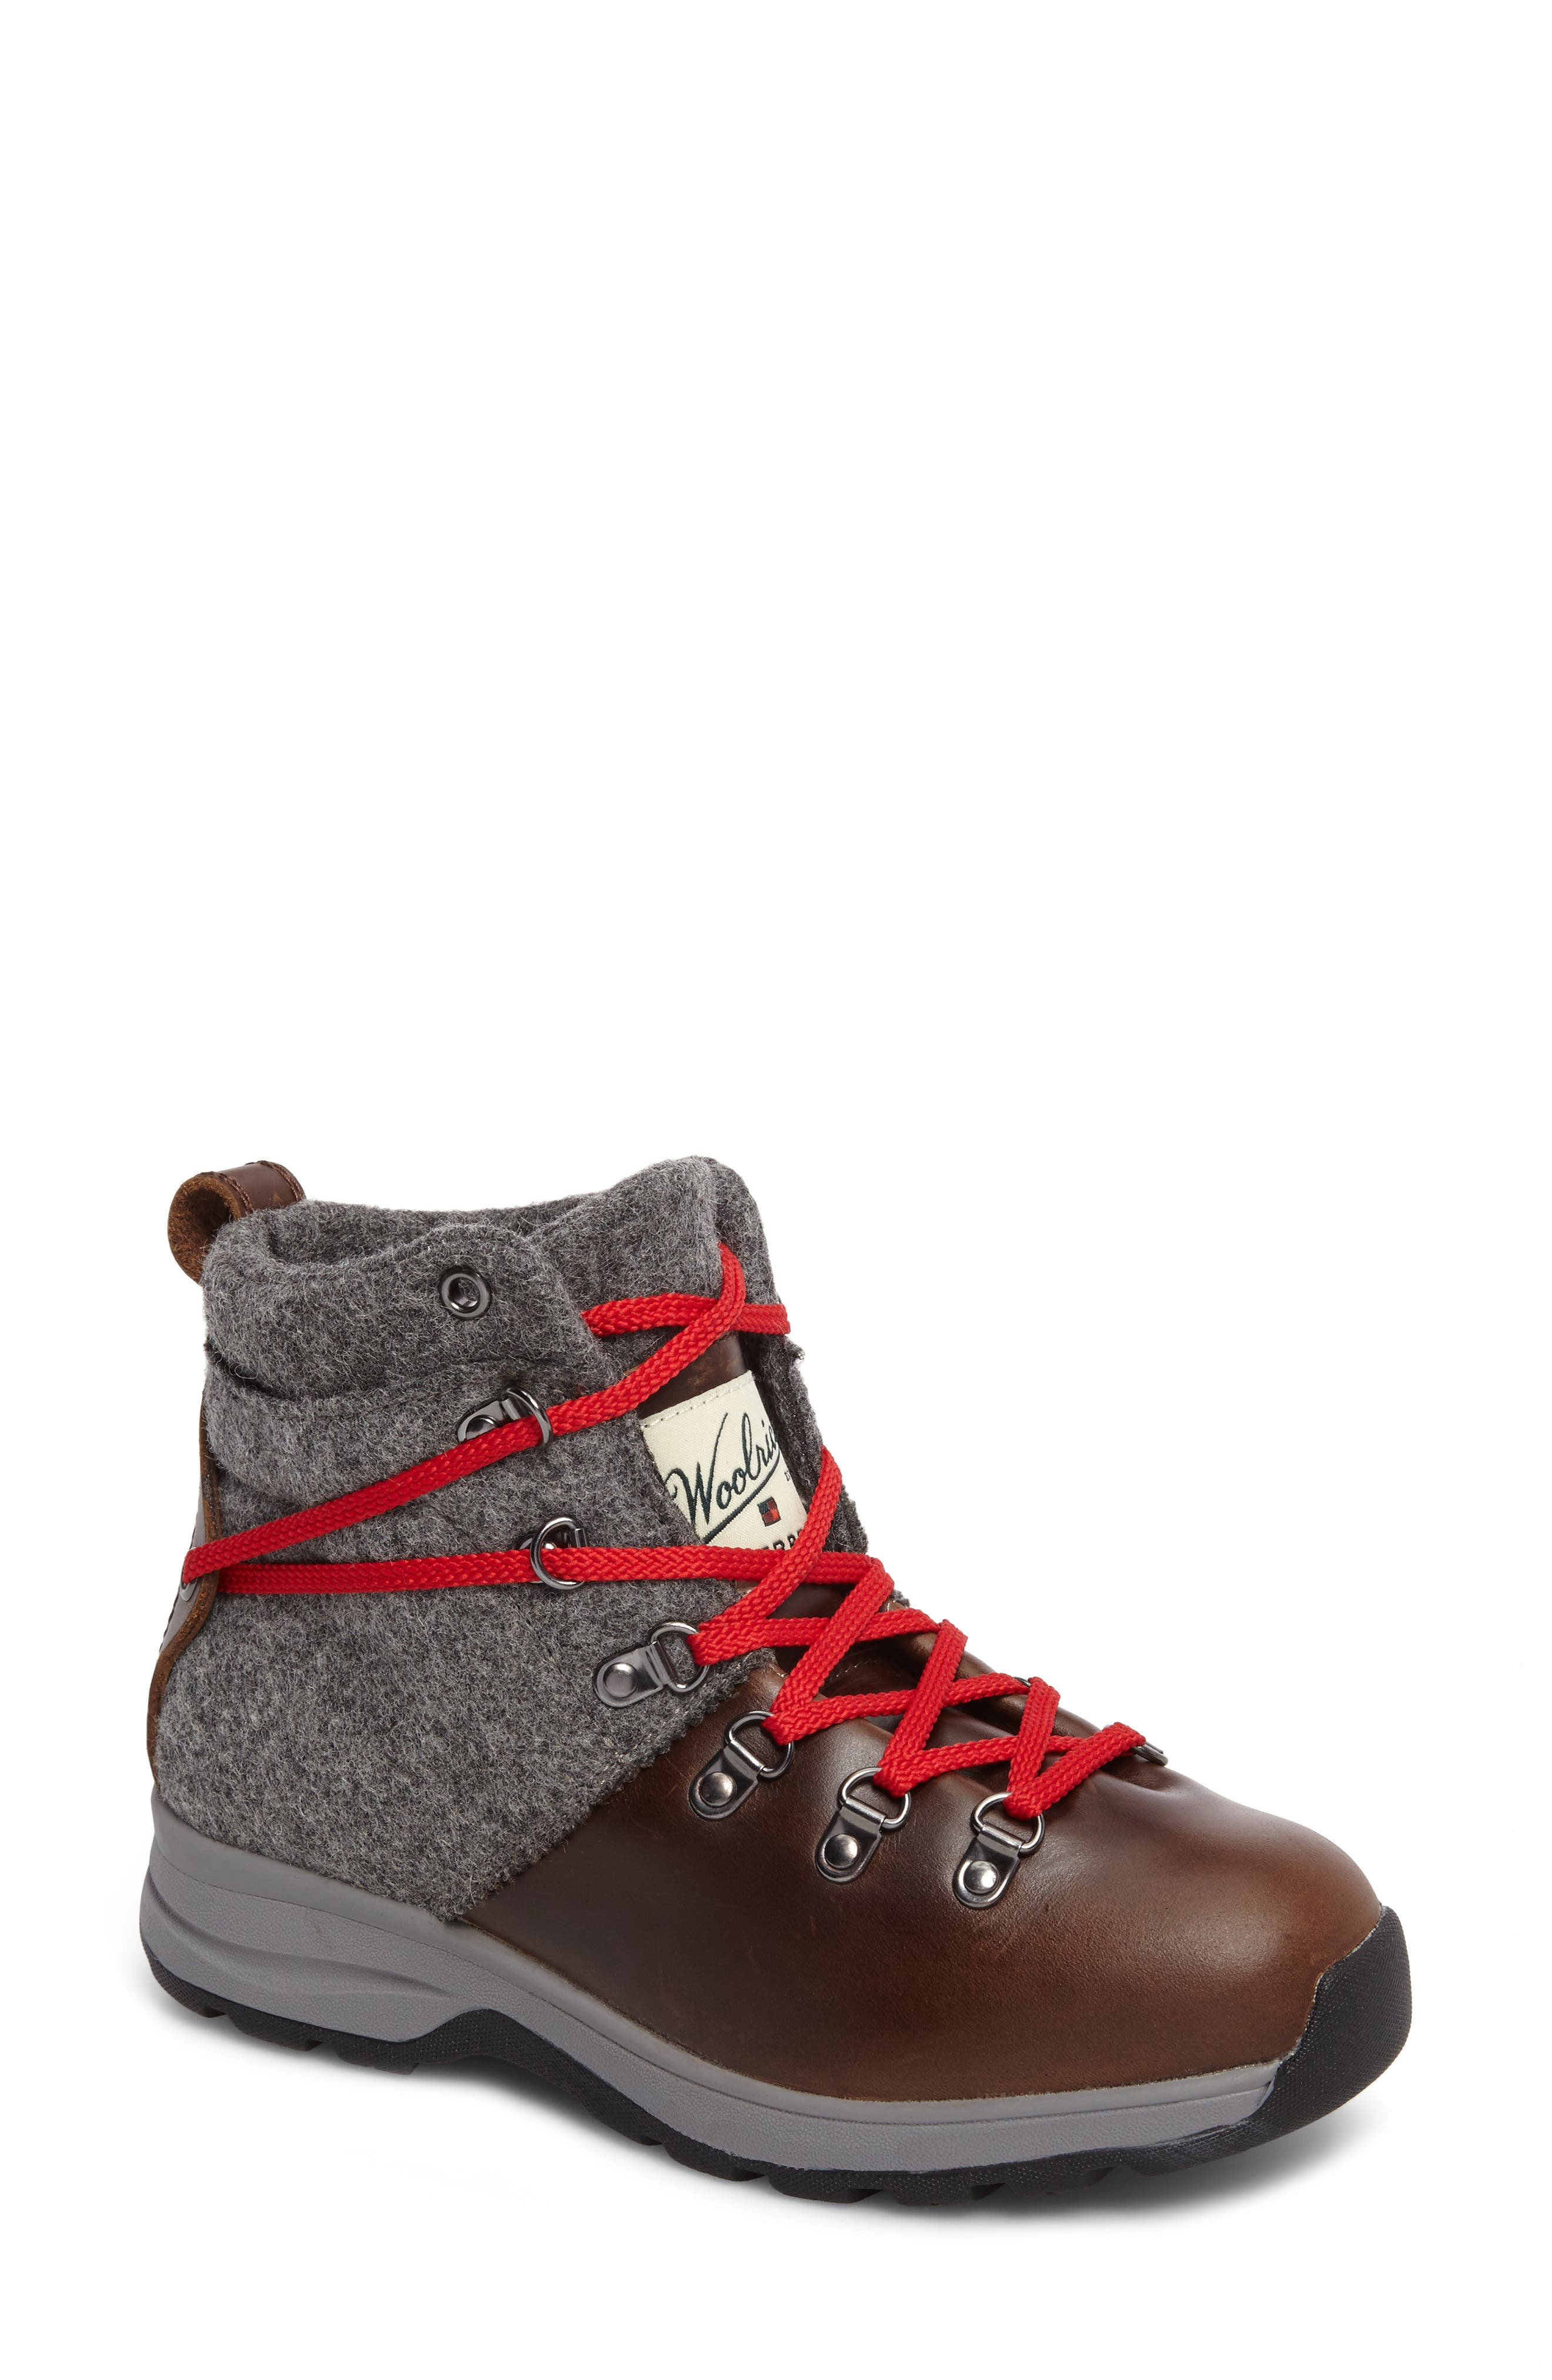 Alternate Image 1 Selected - Woolrich Rockies II Waterproof Hiking Boot (Women)